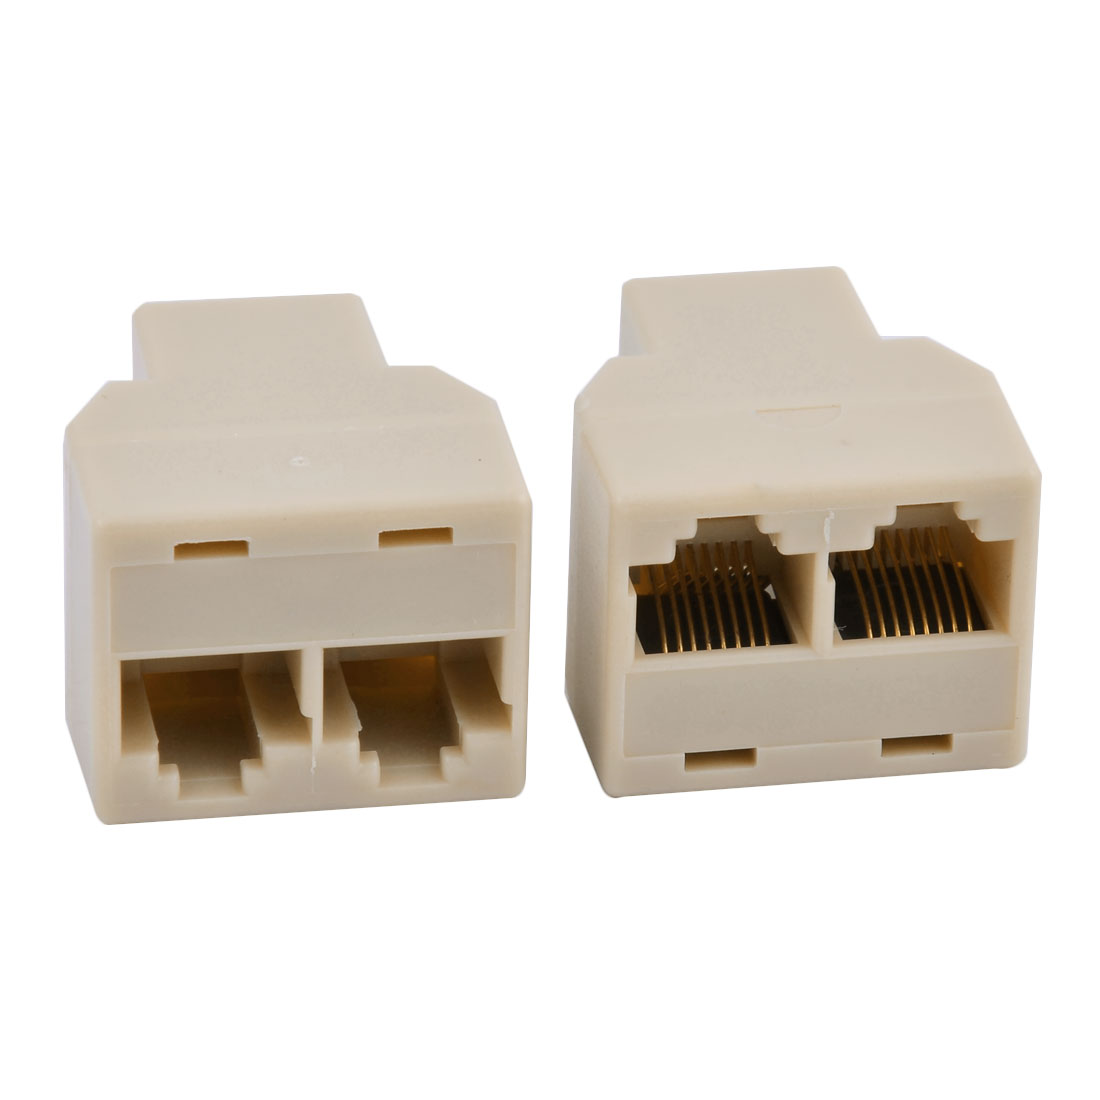 RJ45 8P8C Keystone 1 to 2 Dual Port Network Ethernet Extender Connector Splitter Beige 2pcs